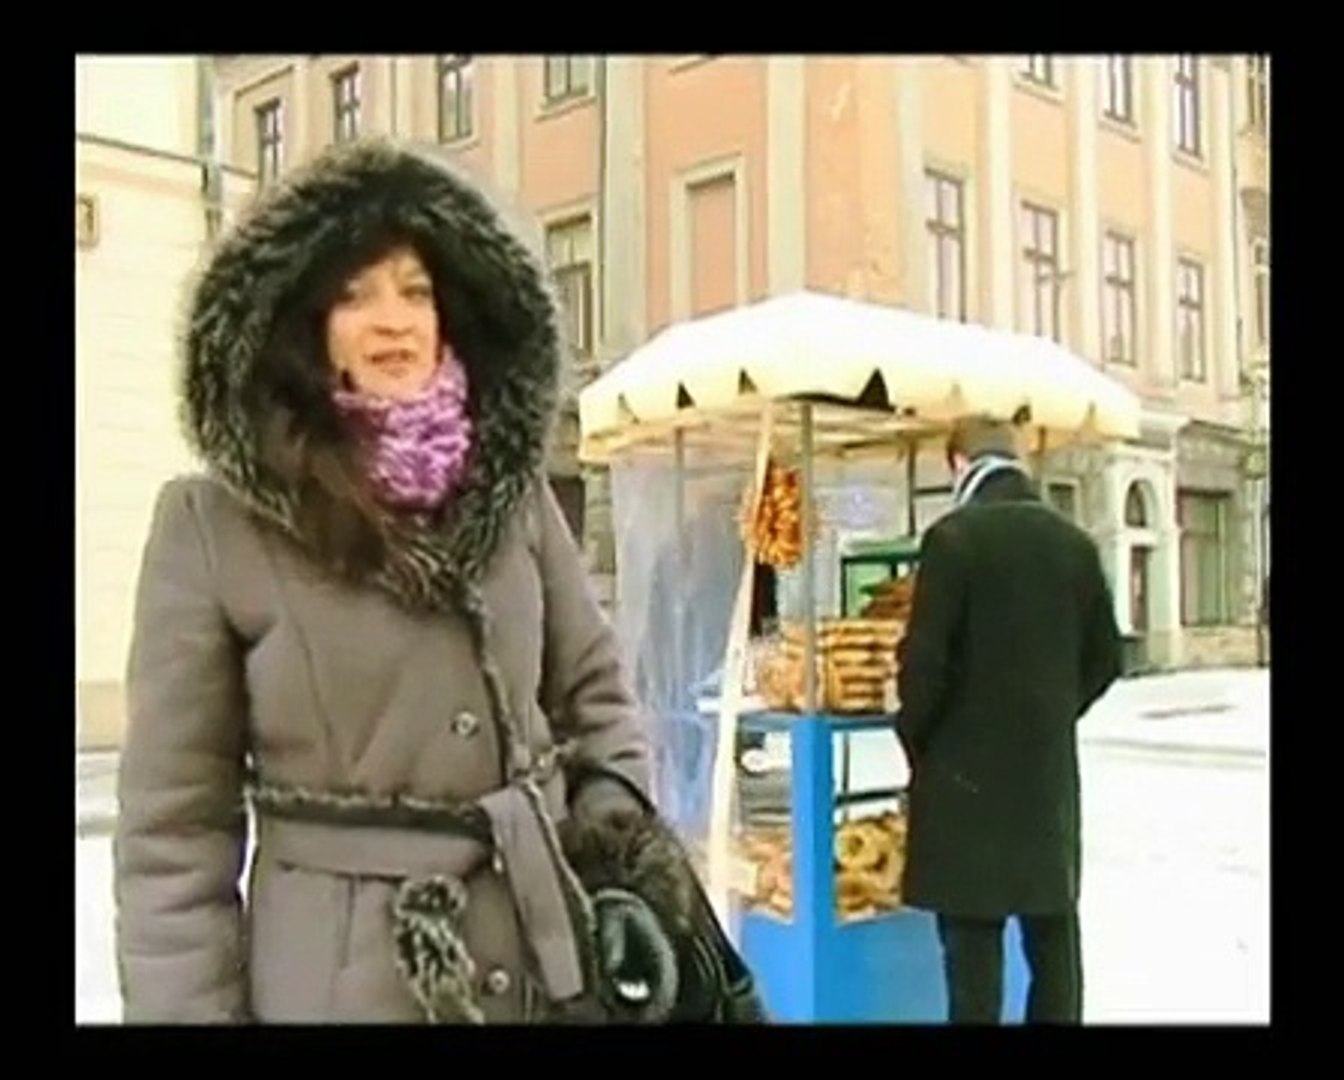 krakow - 10 things to do (in winter)